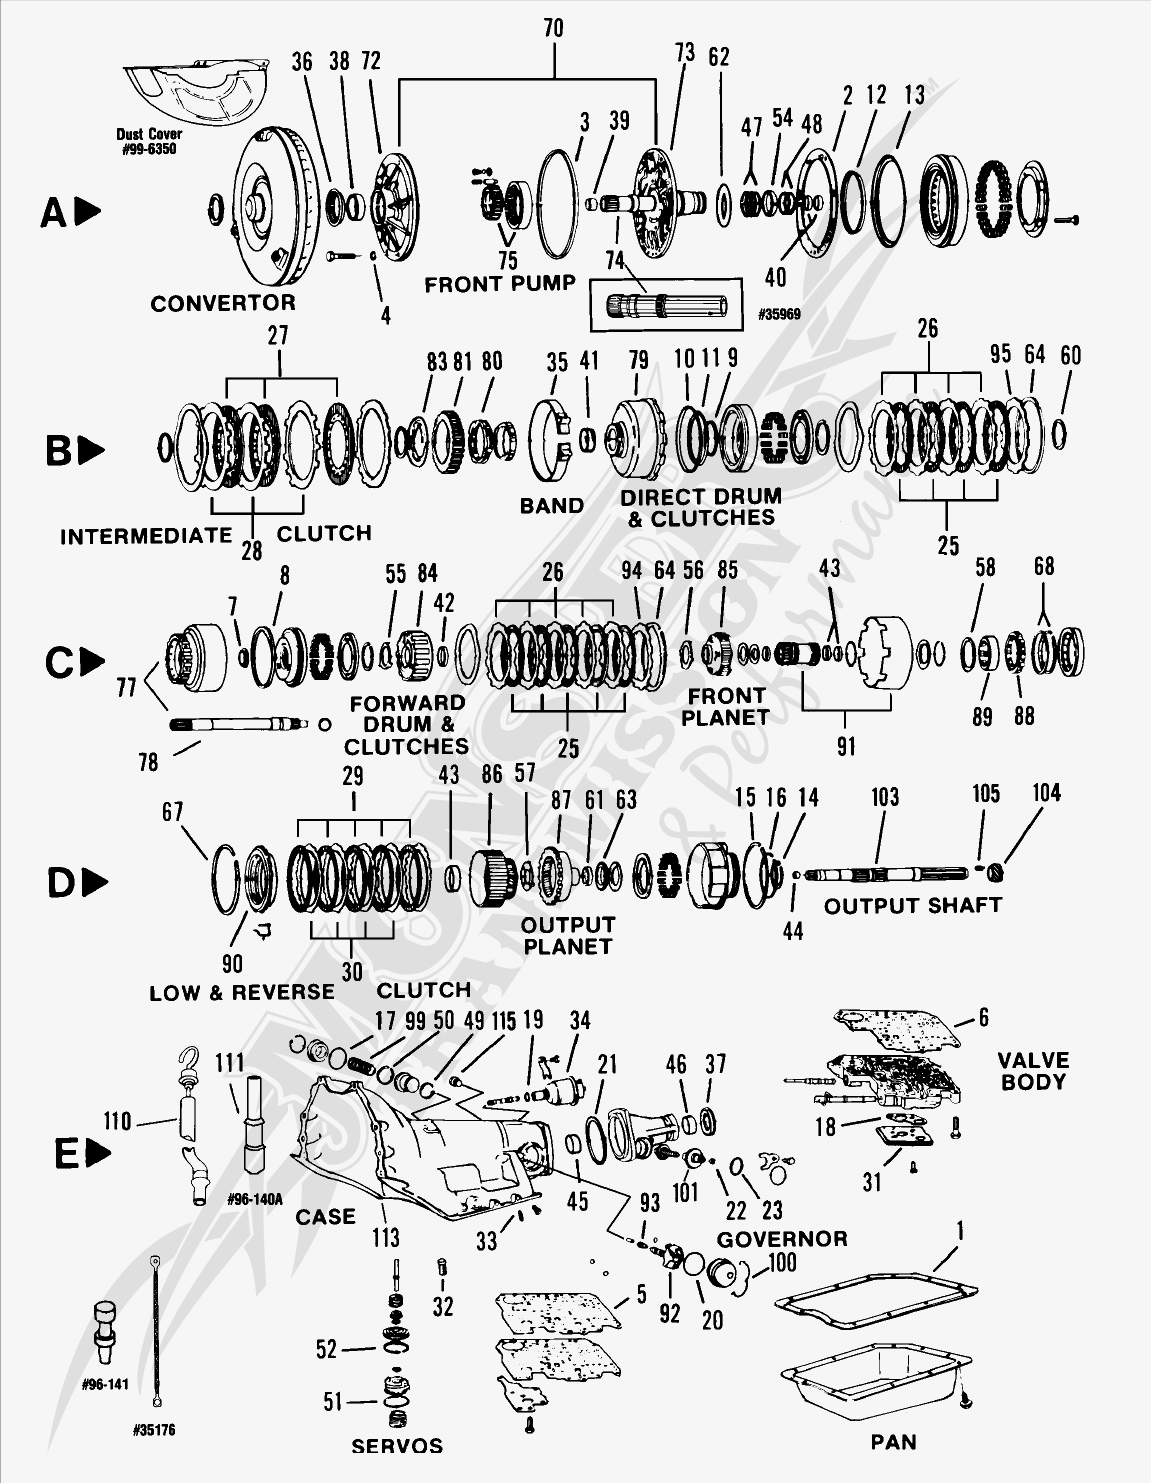 gm transmission diagram 20 11 beyonddogs nl 4T45E Transmission Diagram turbo 350c th350c automatic transmission parts and diagram rh monstertransmission gm 4l60e transmission diagram gm